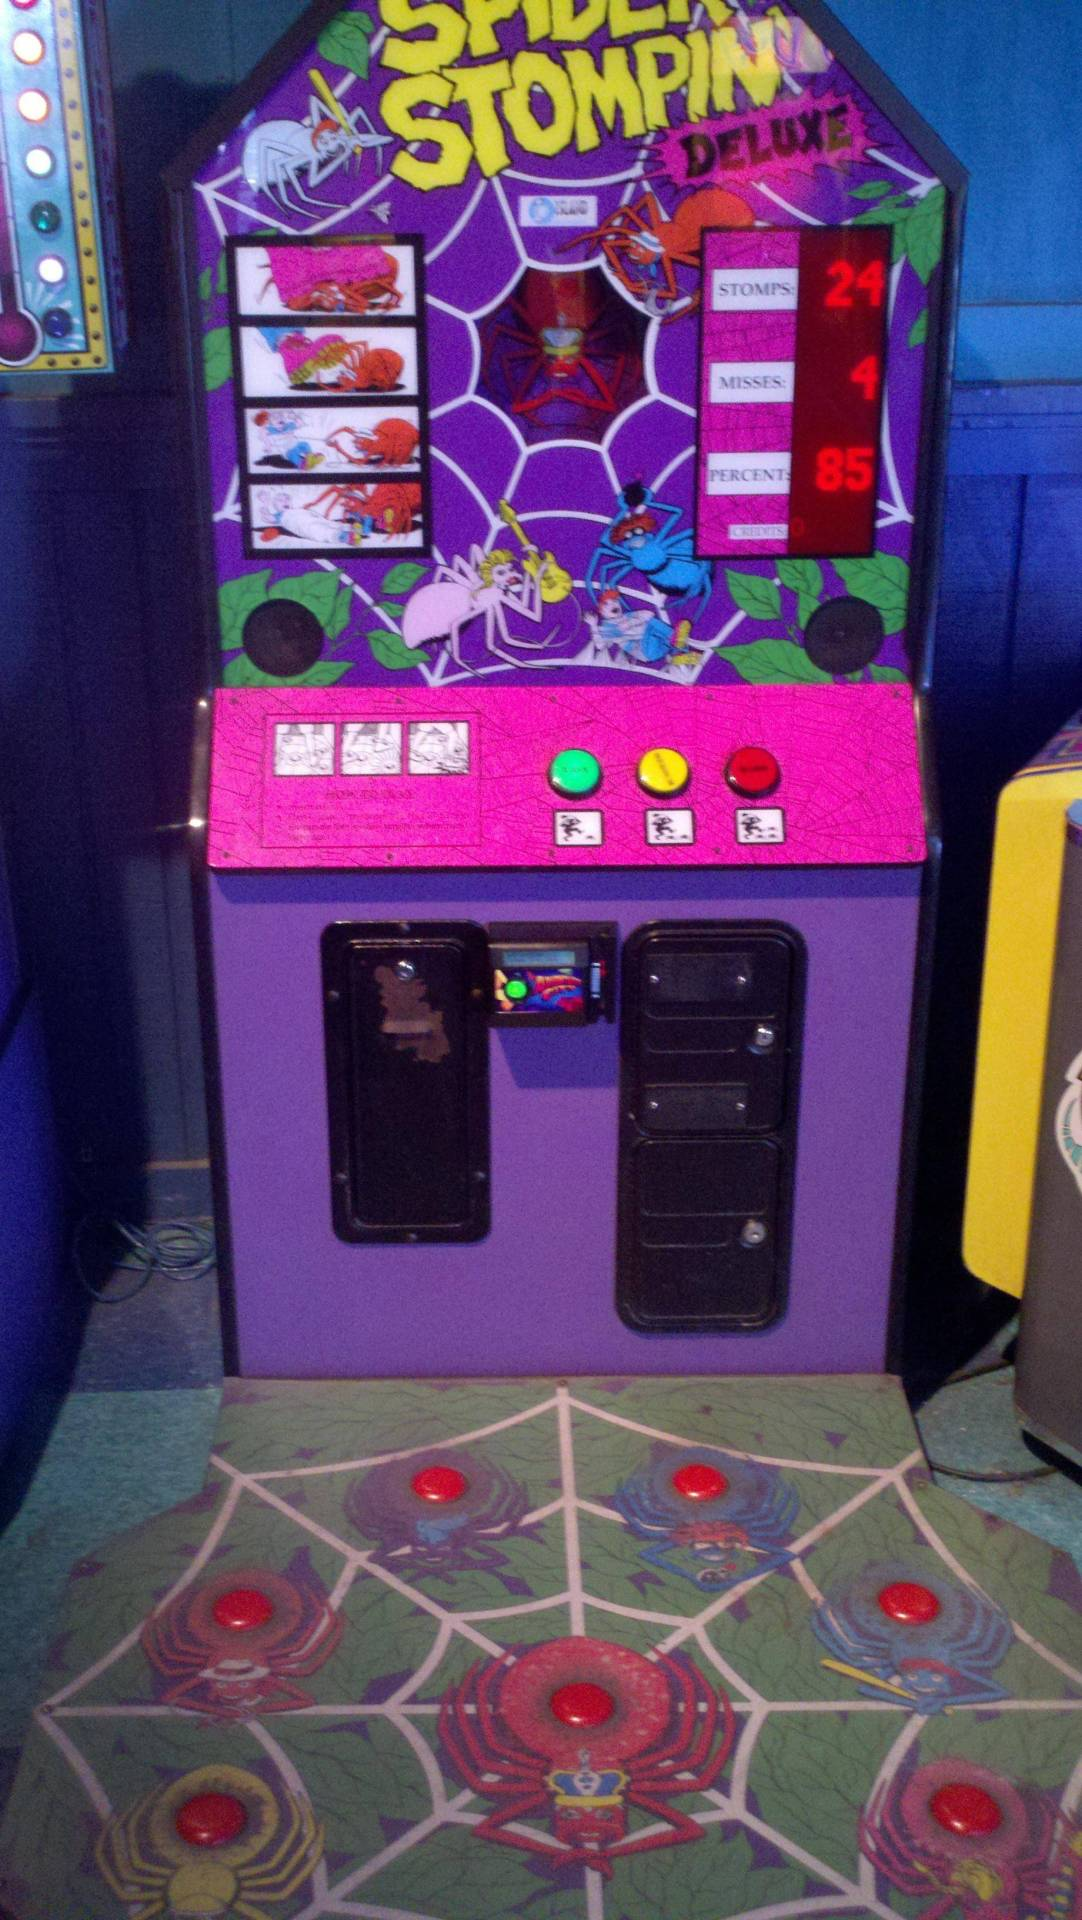 Omg! Yes, this was my favorite game at the arcade!